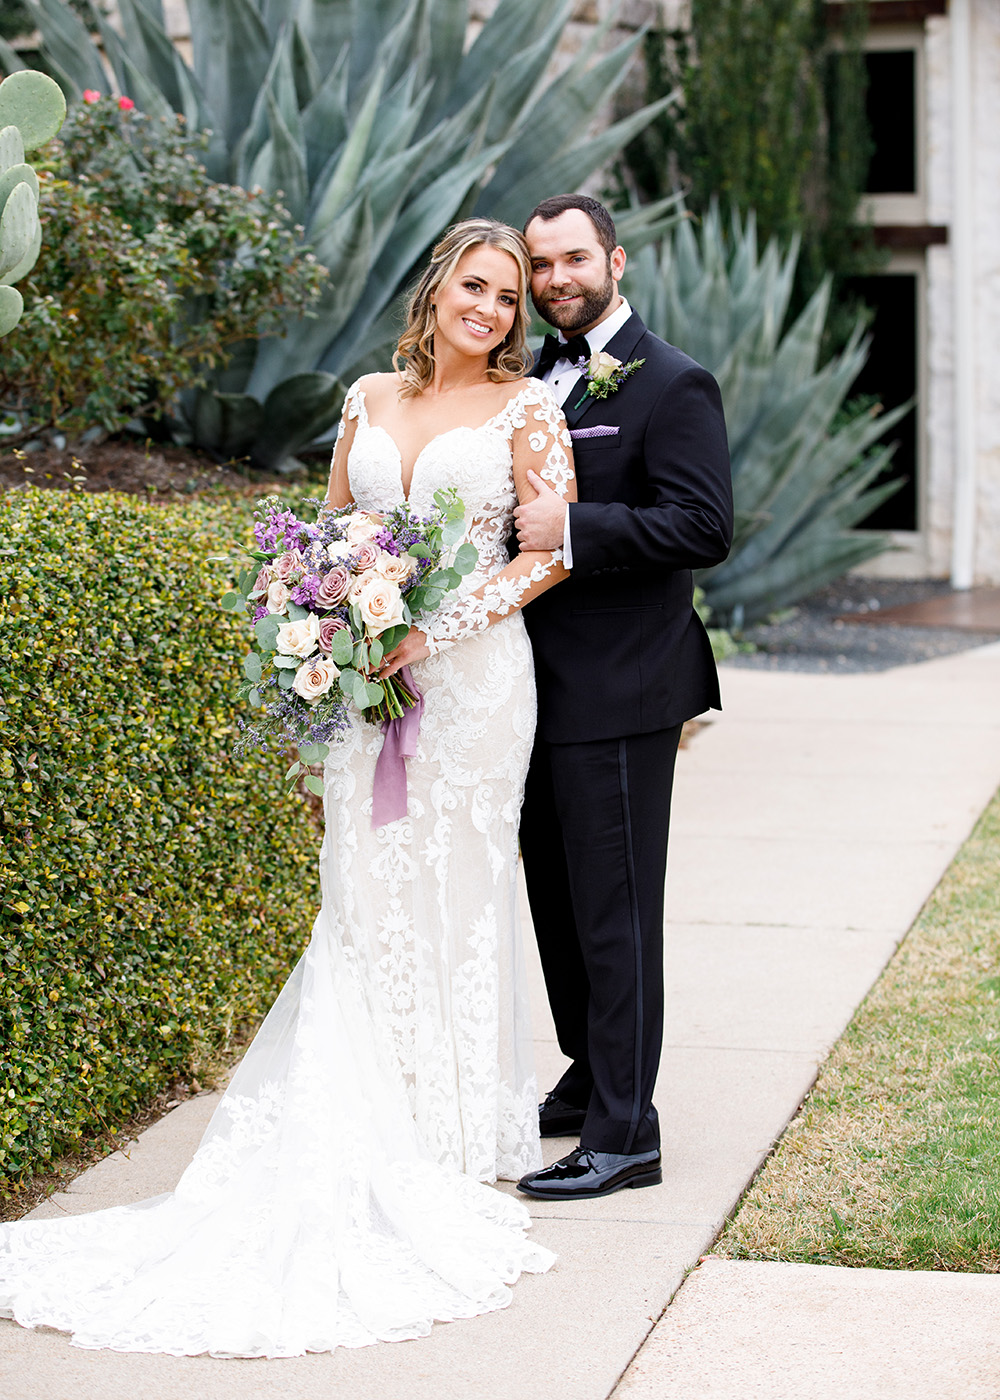 Bride in a romantic long sleeved lace gown with sleek lengthy rain and lilac lush bouquet, and groom in a classic black tux.